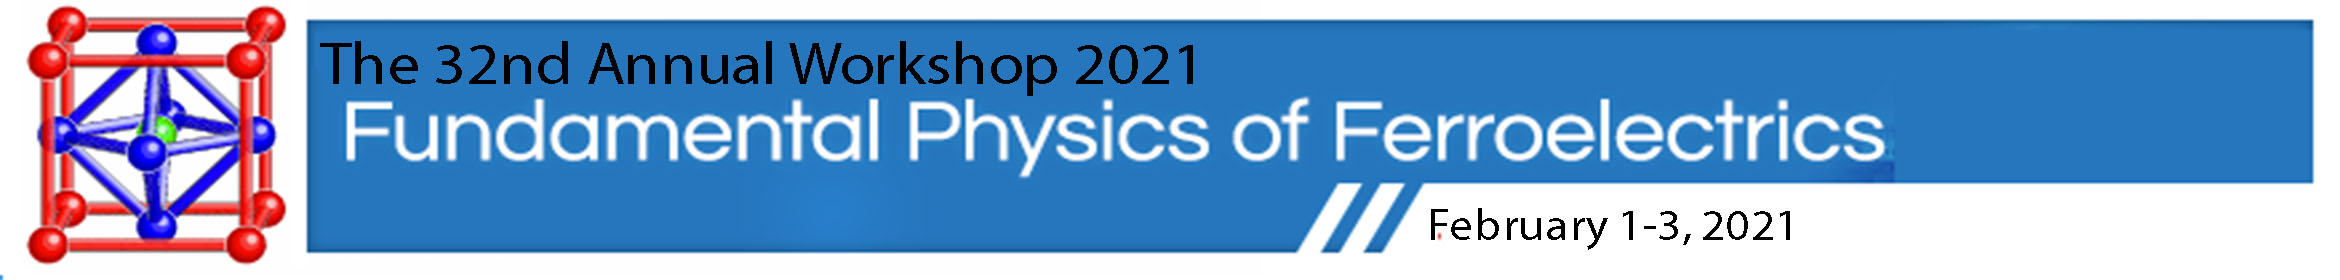 2021 Fundamental Physics of Ferroelectrics and Related Materials Virtual Conference (Ferro2021) Main banner